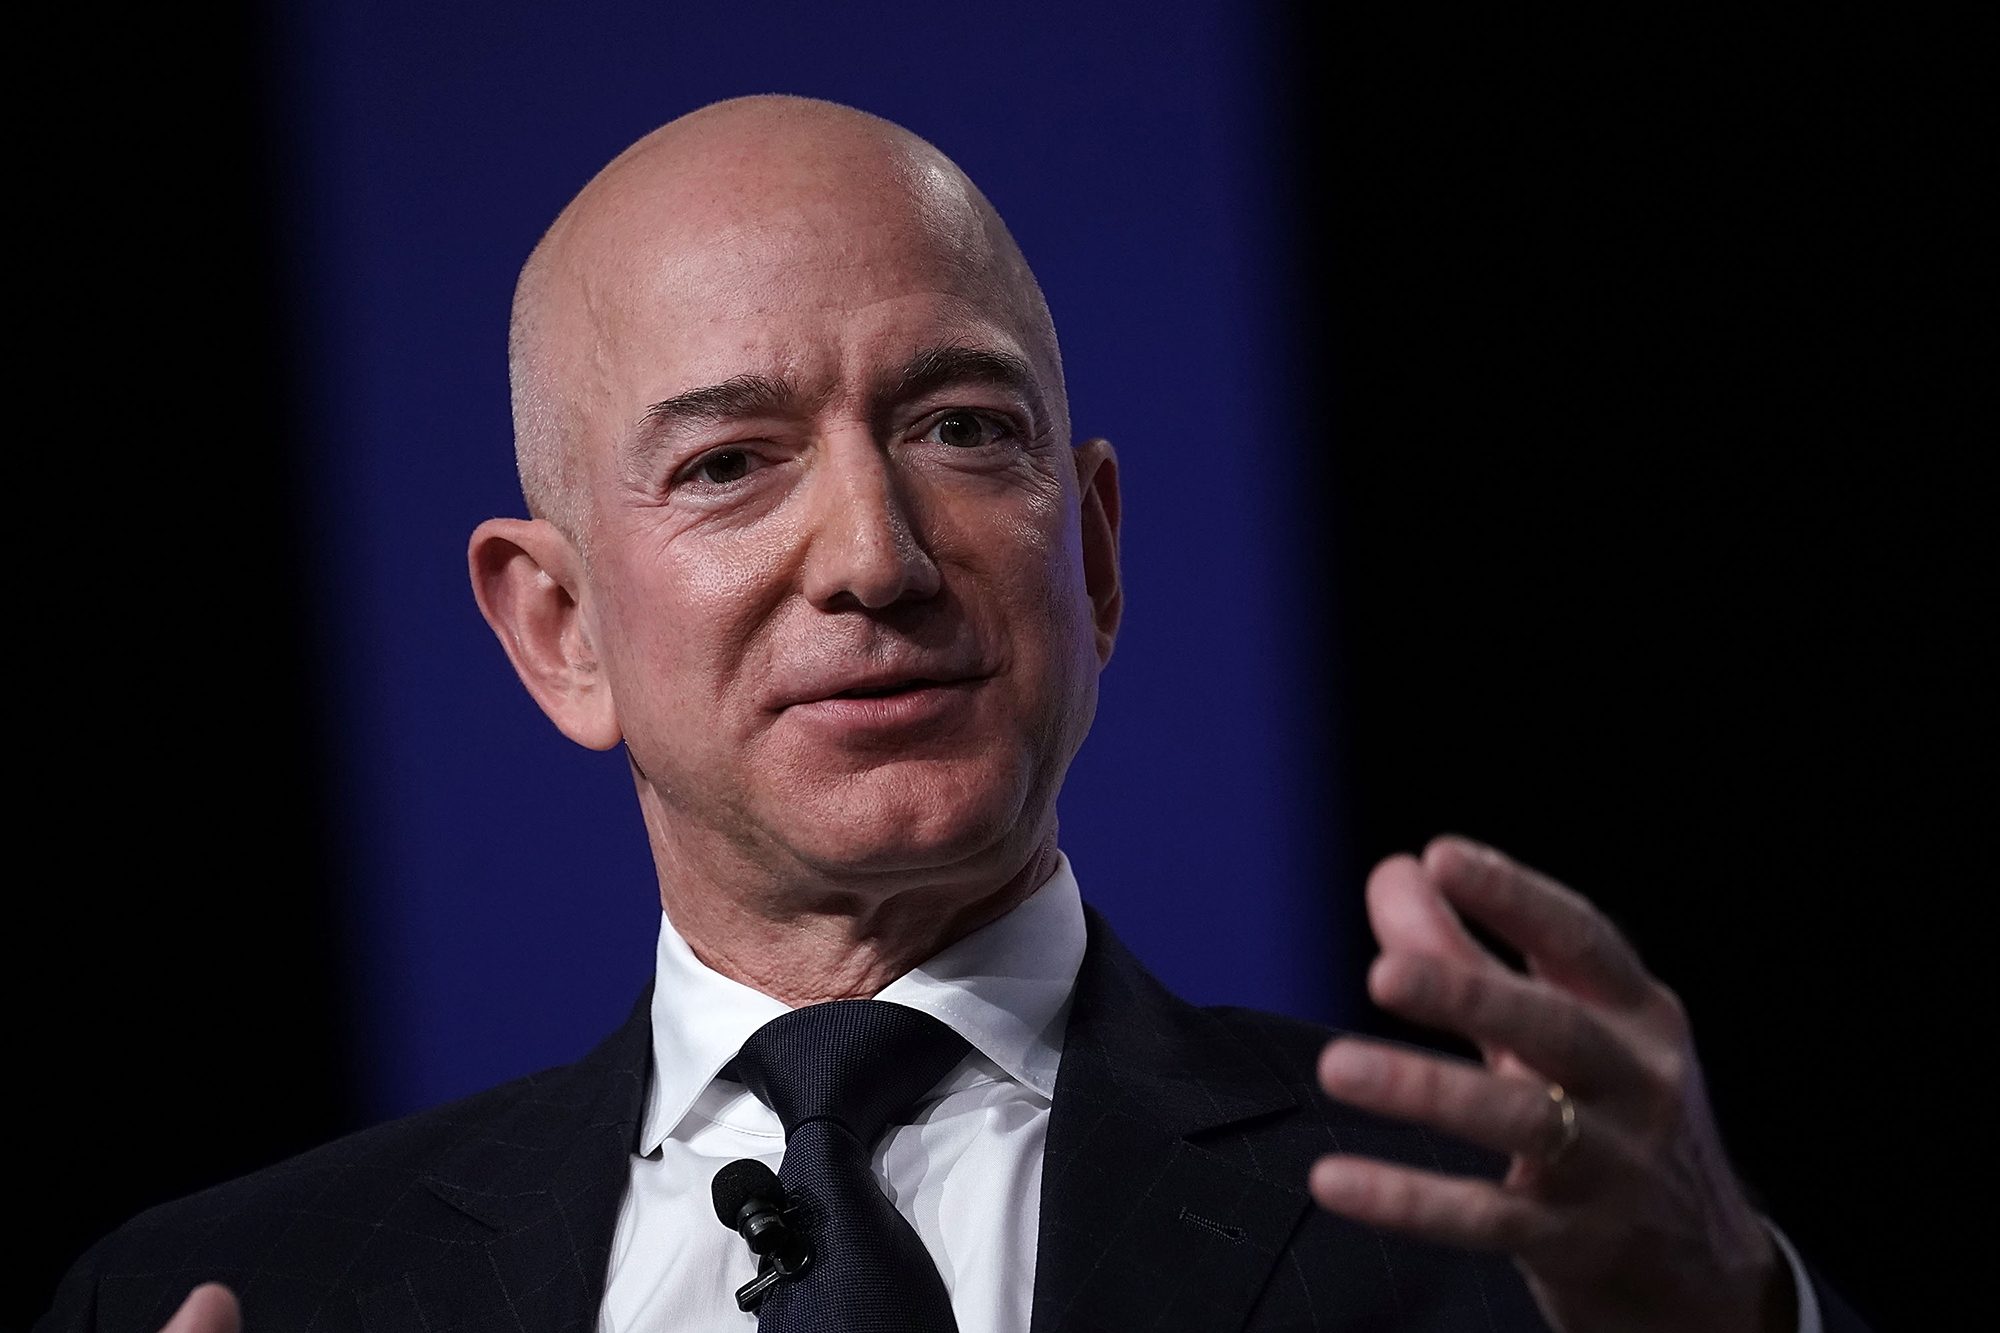 Jeff Bezos Is Stingy When It Comes To Charity